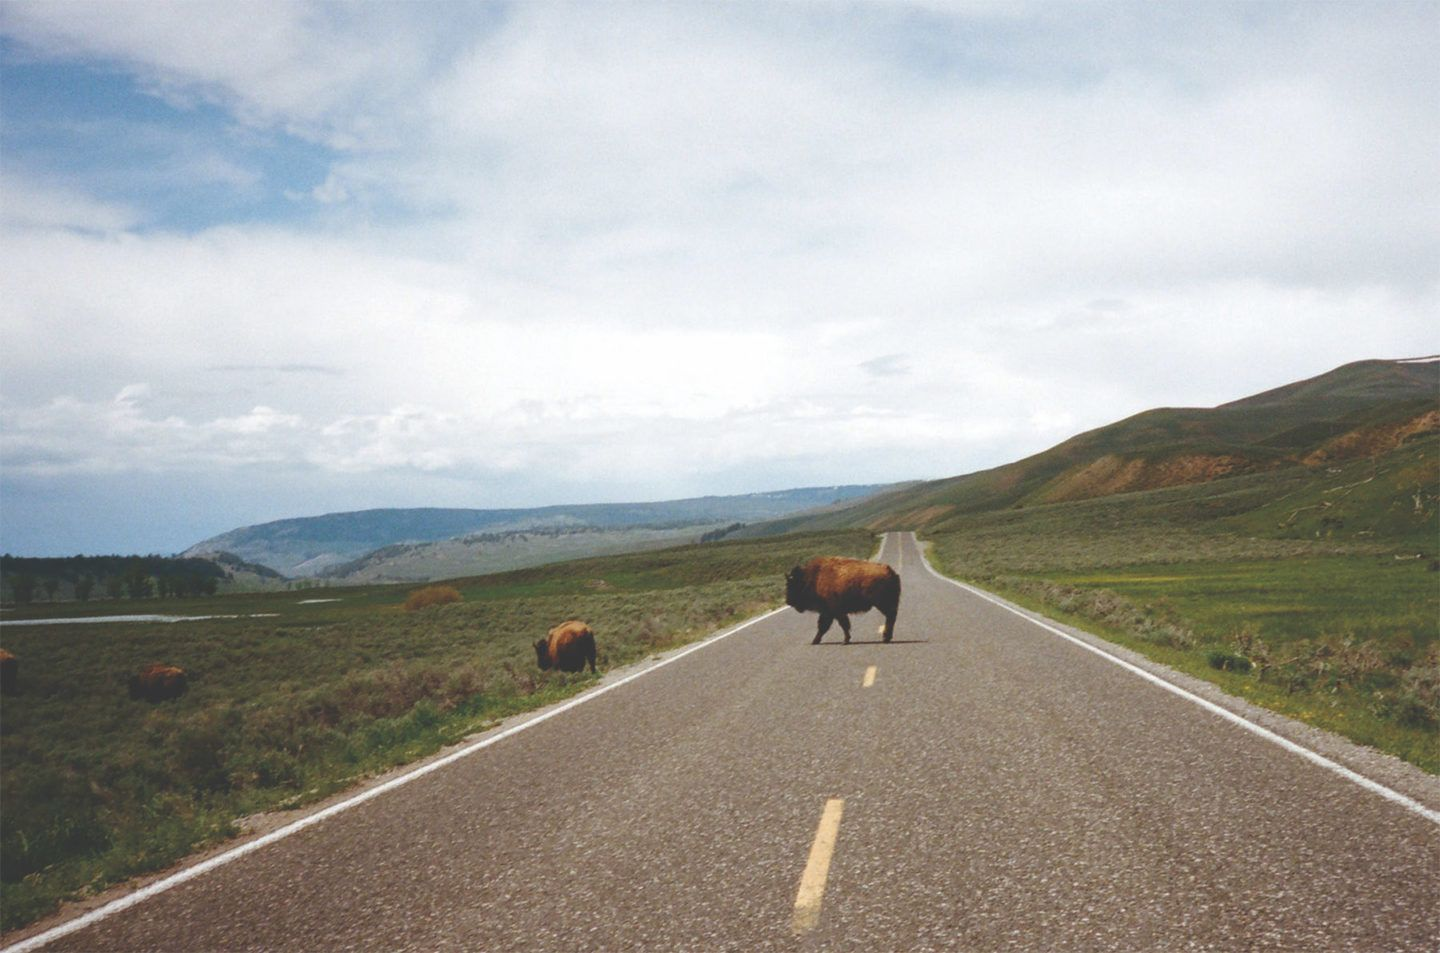 Bison crossing a road in Wyoming in the late spring.